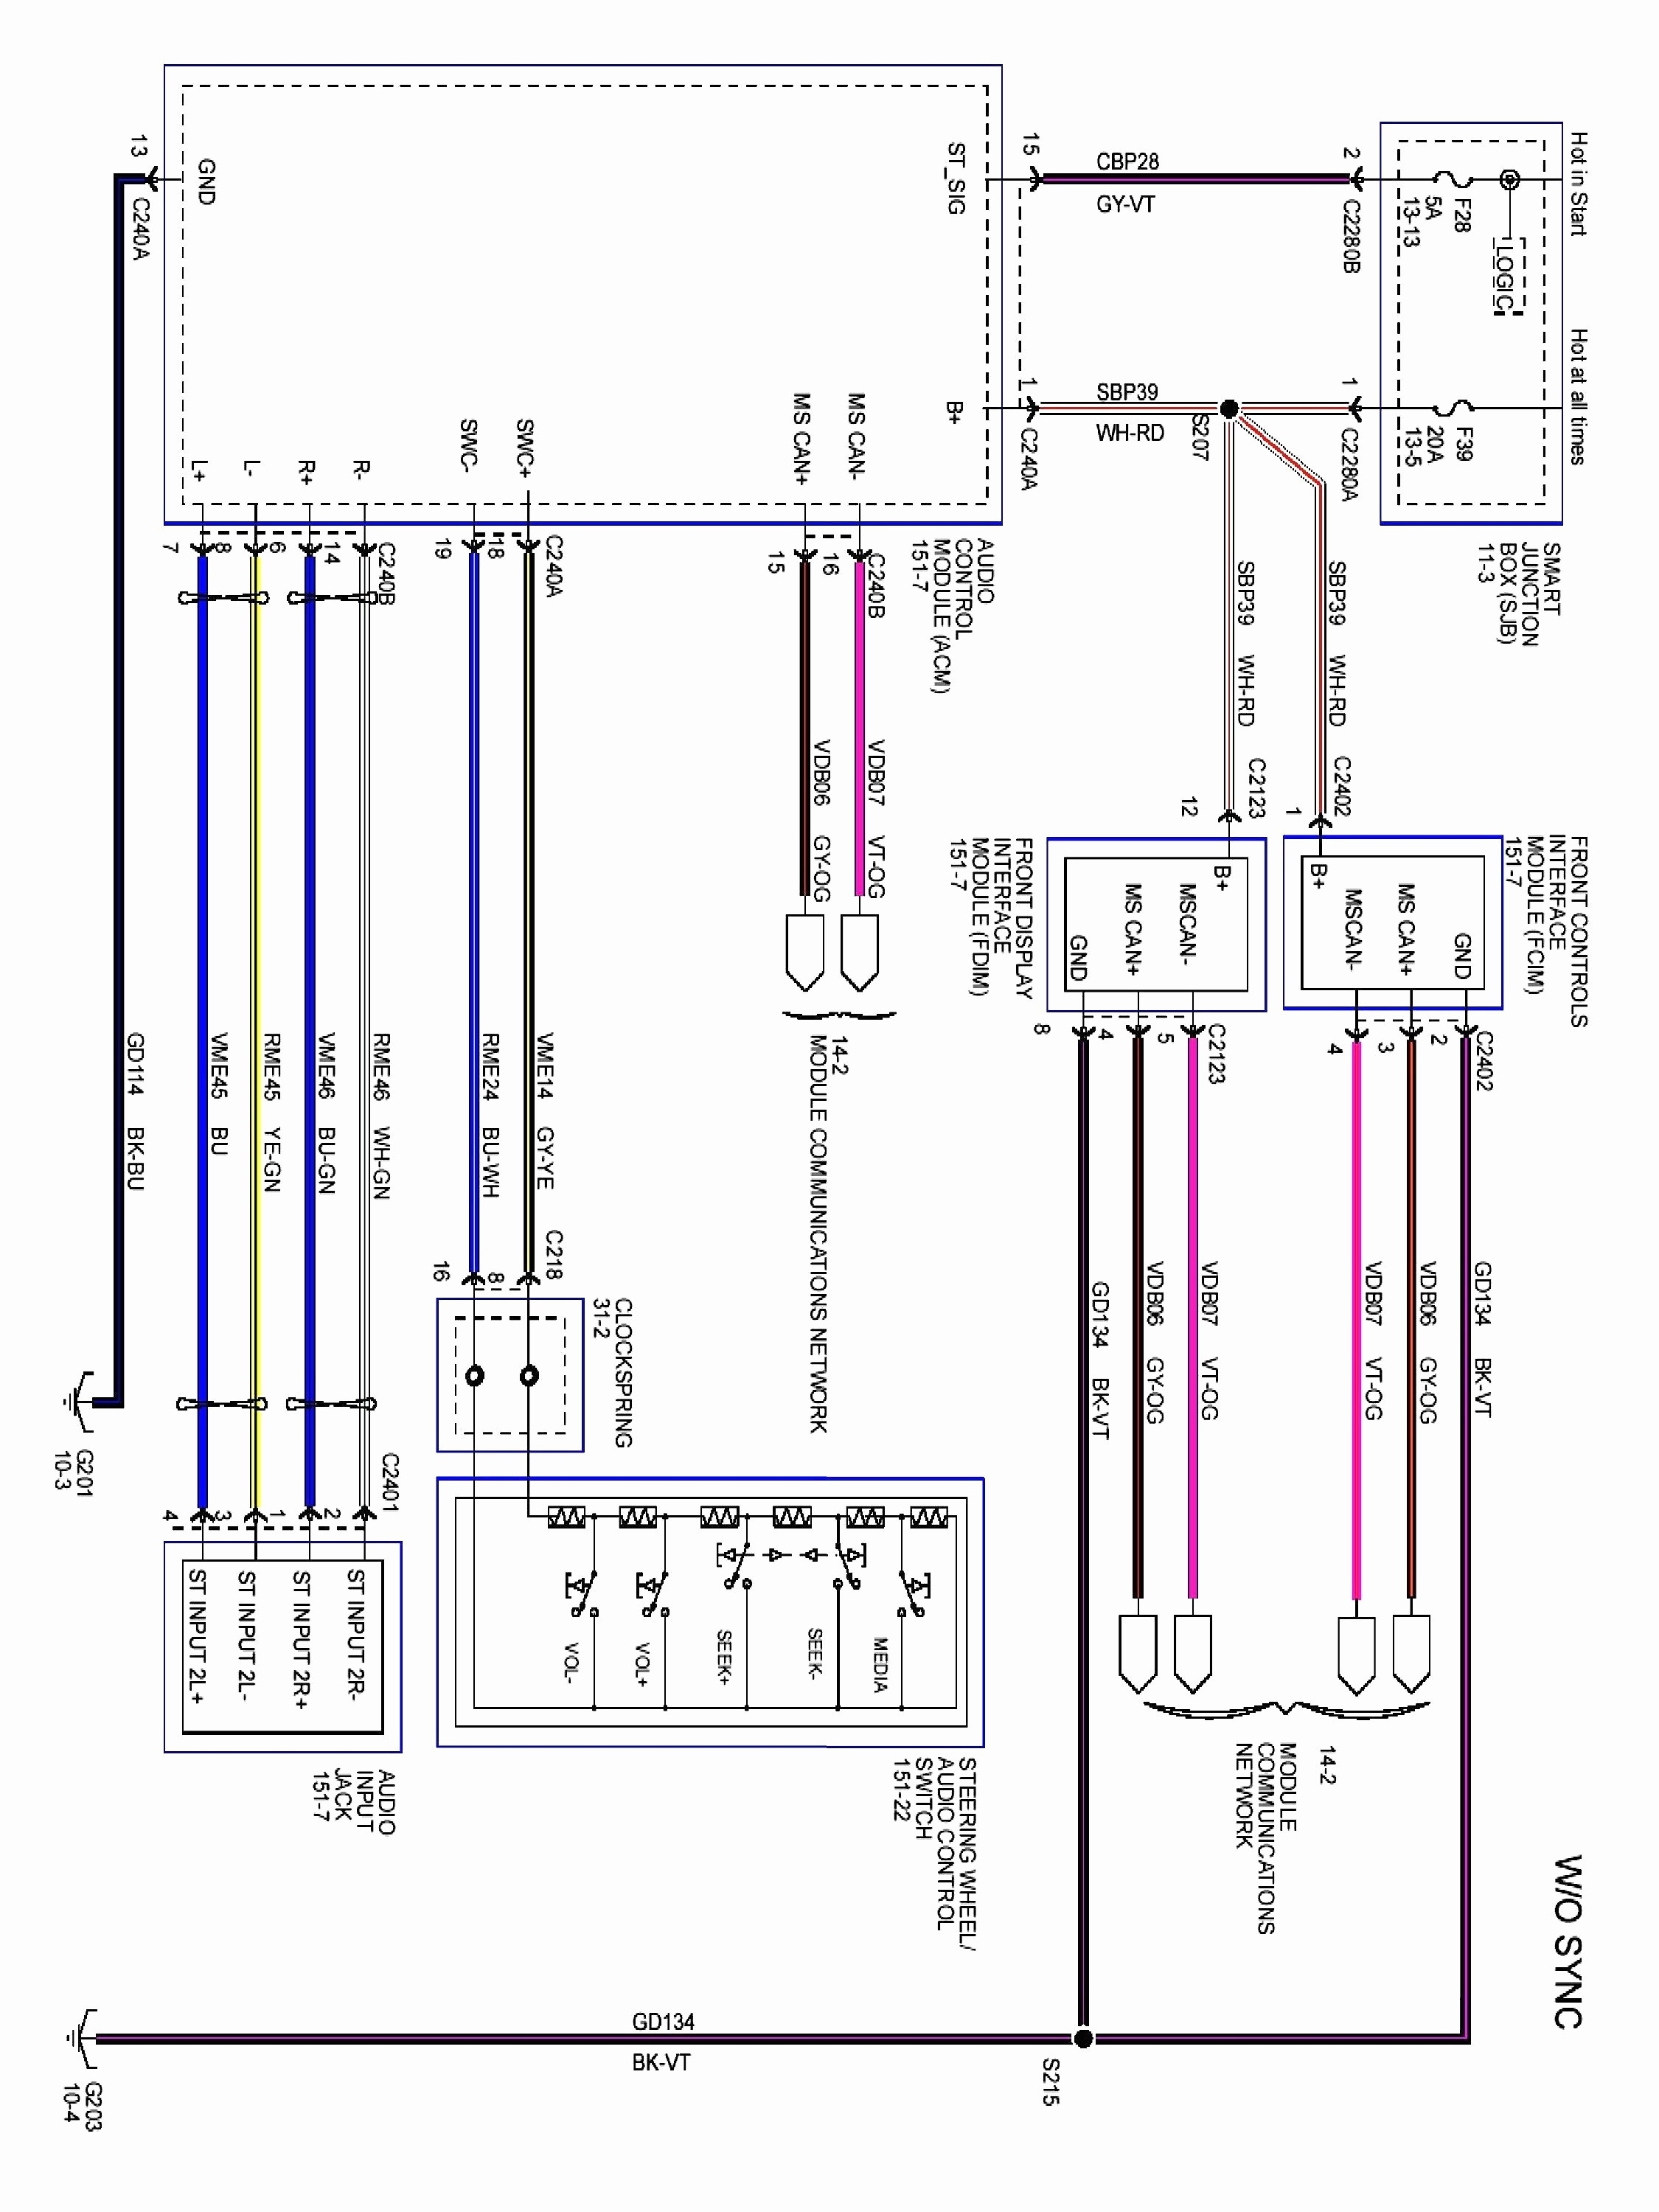 kti hydraulic pump wiring diagram 99 civic stereo free